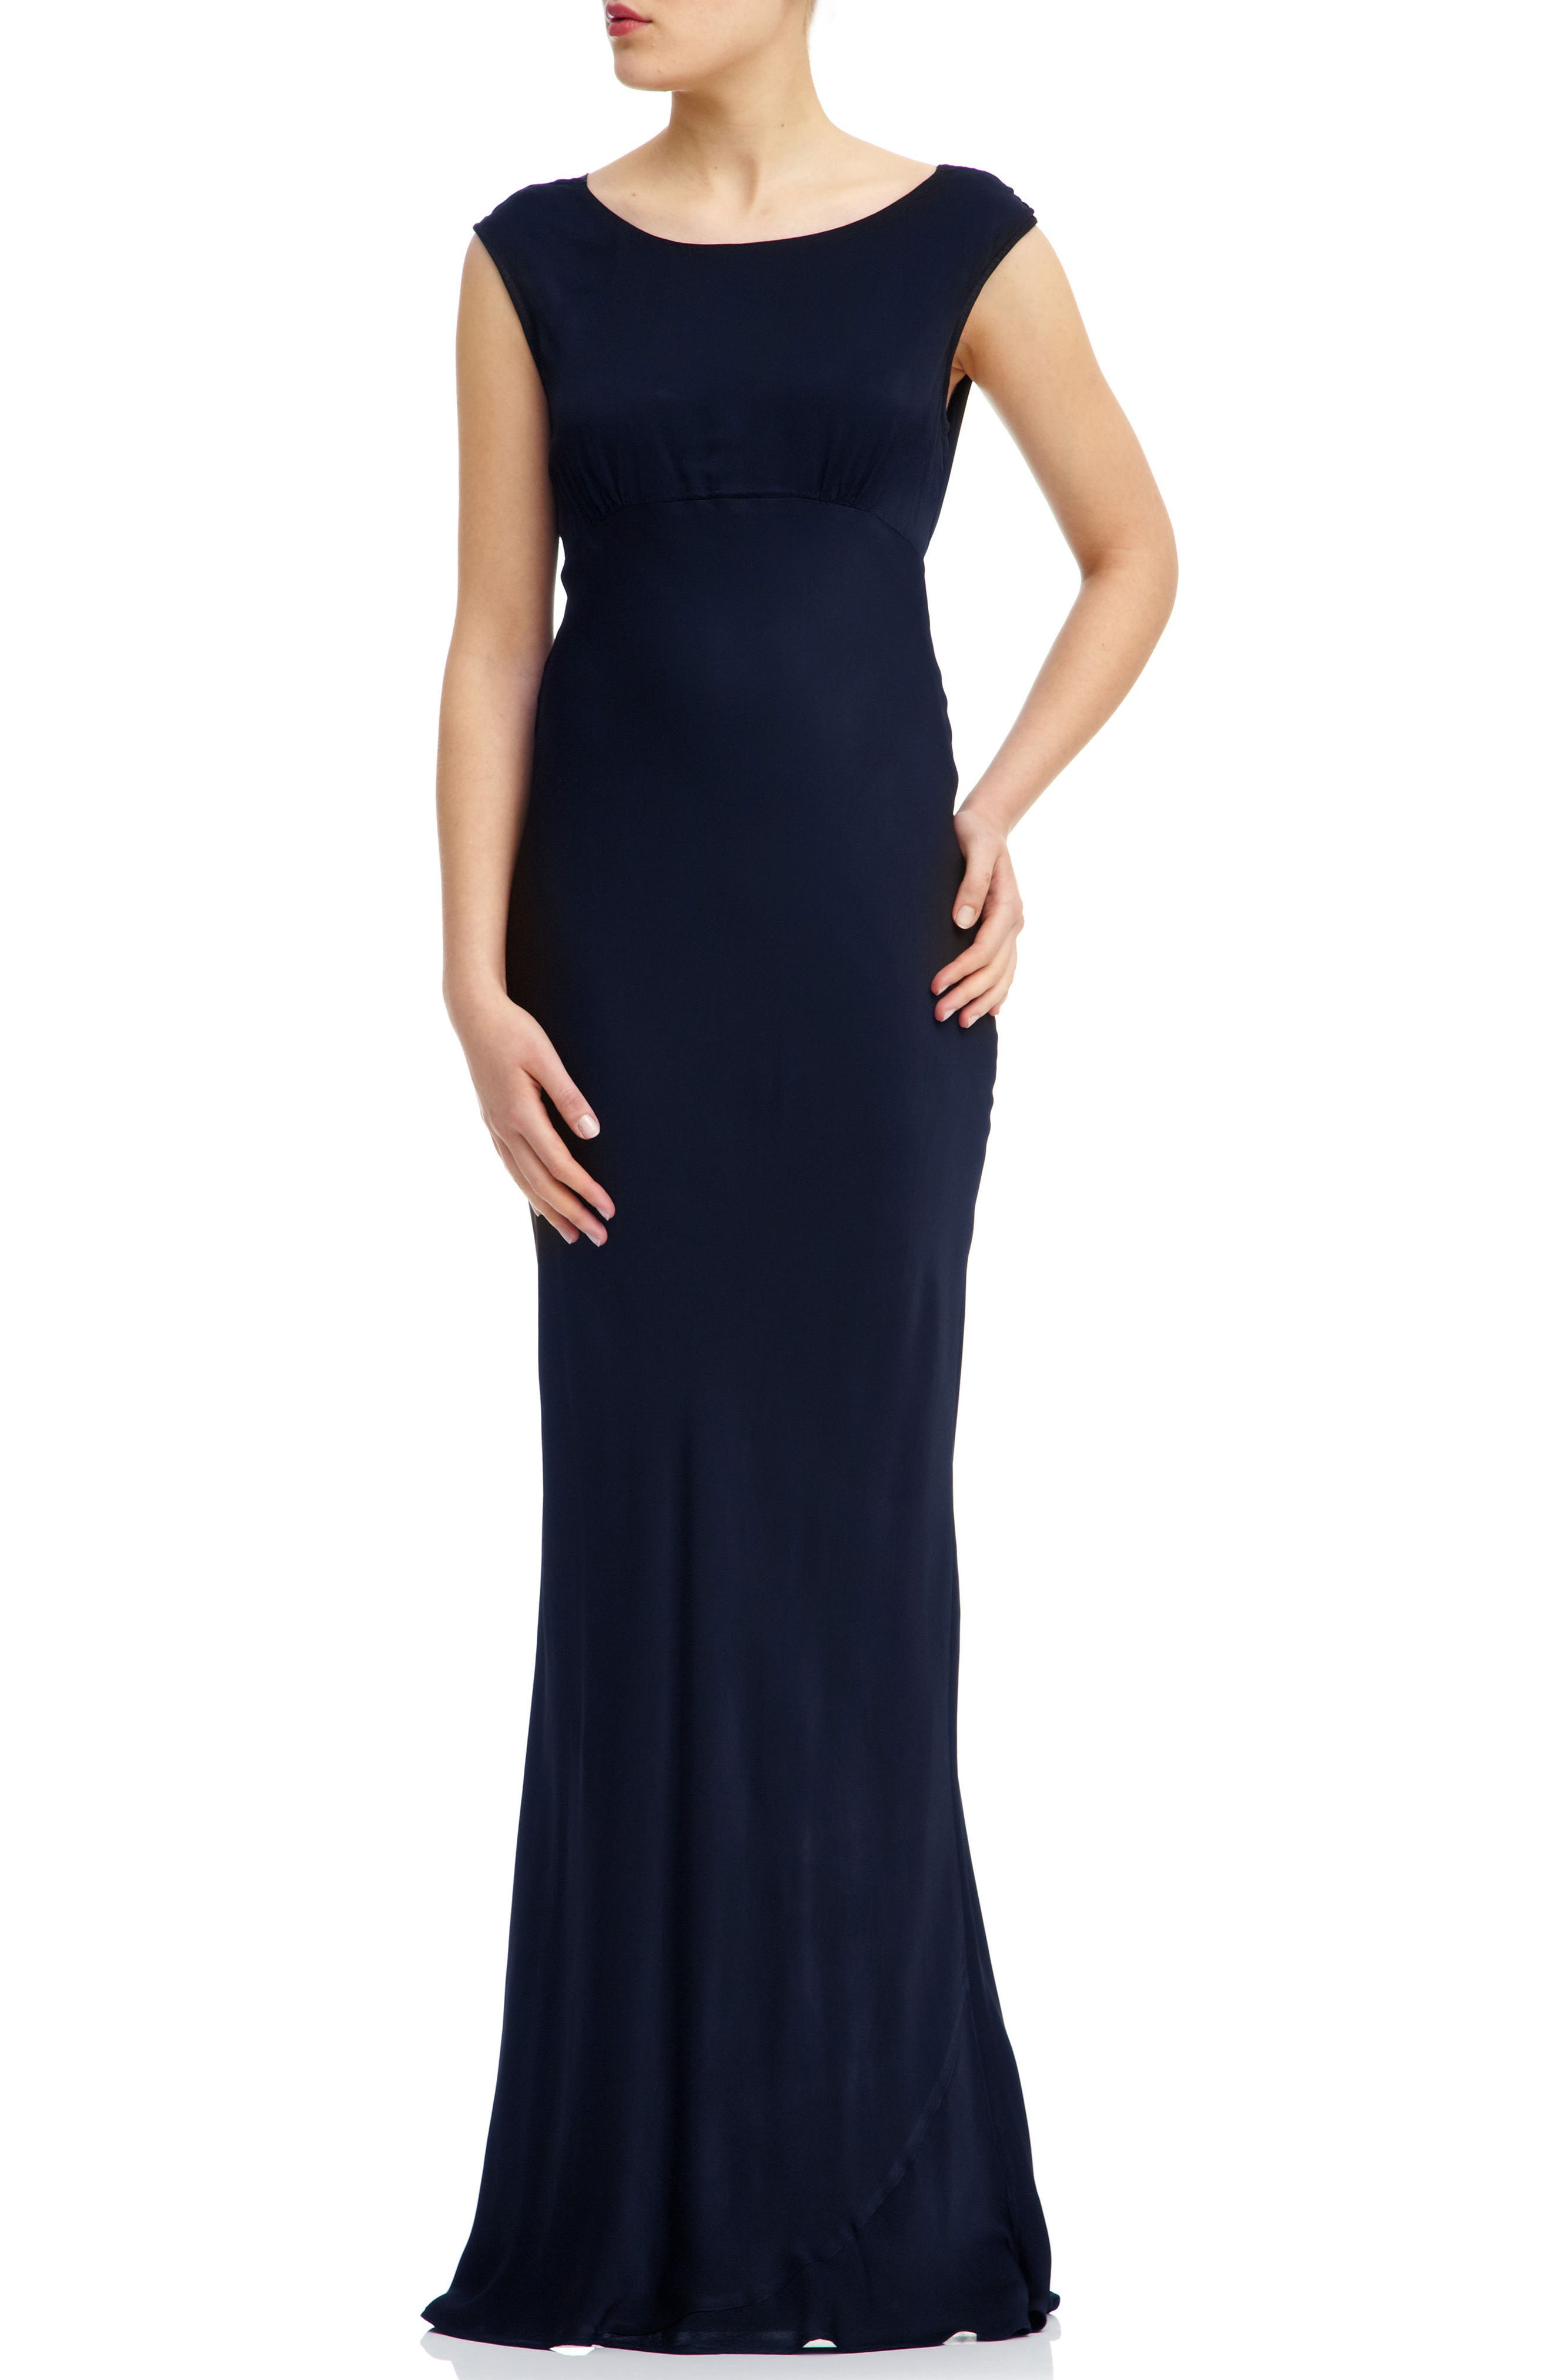 Salma Cowl Back Gown,                             Main thumbnail 1, color,                             Navy